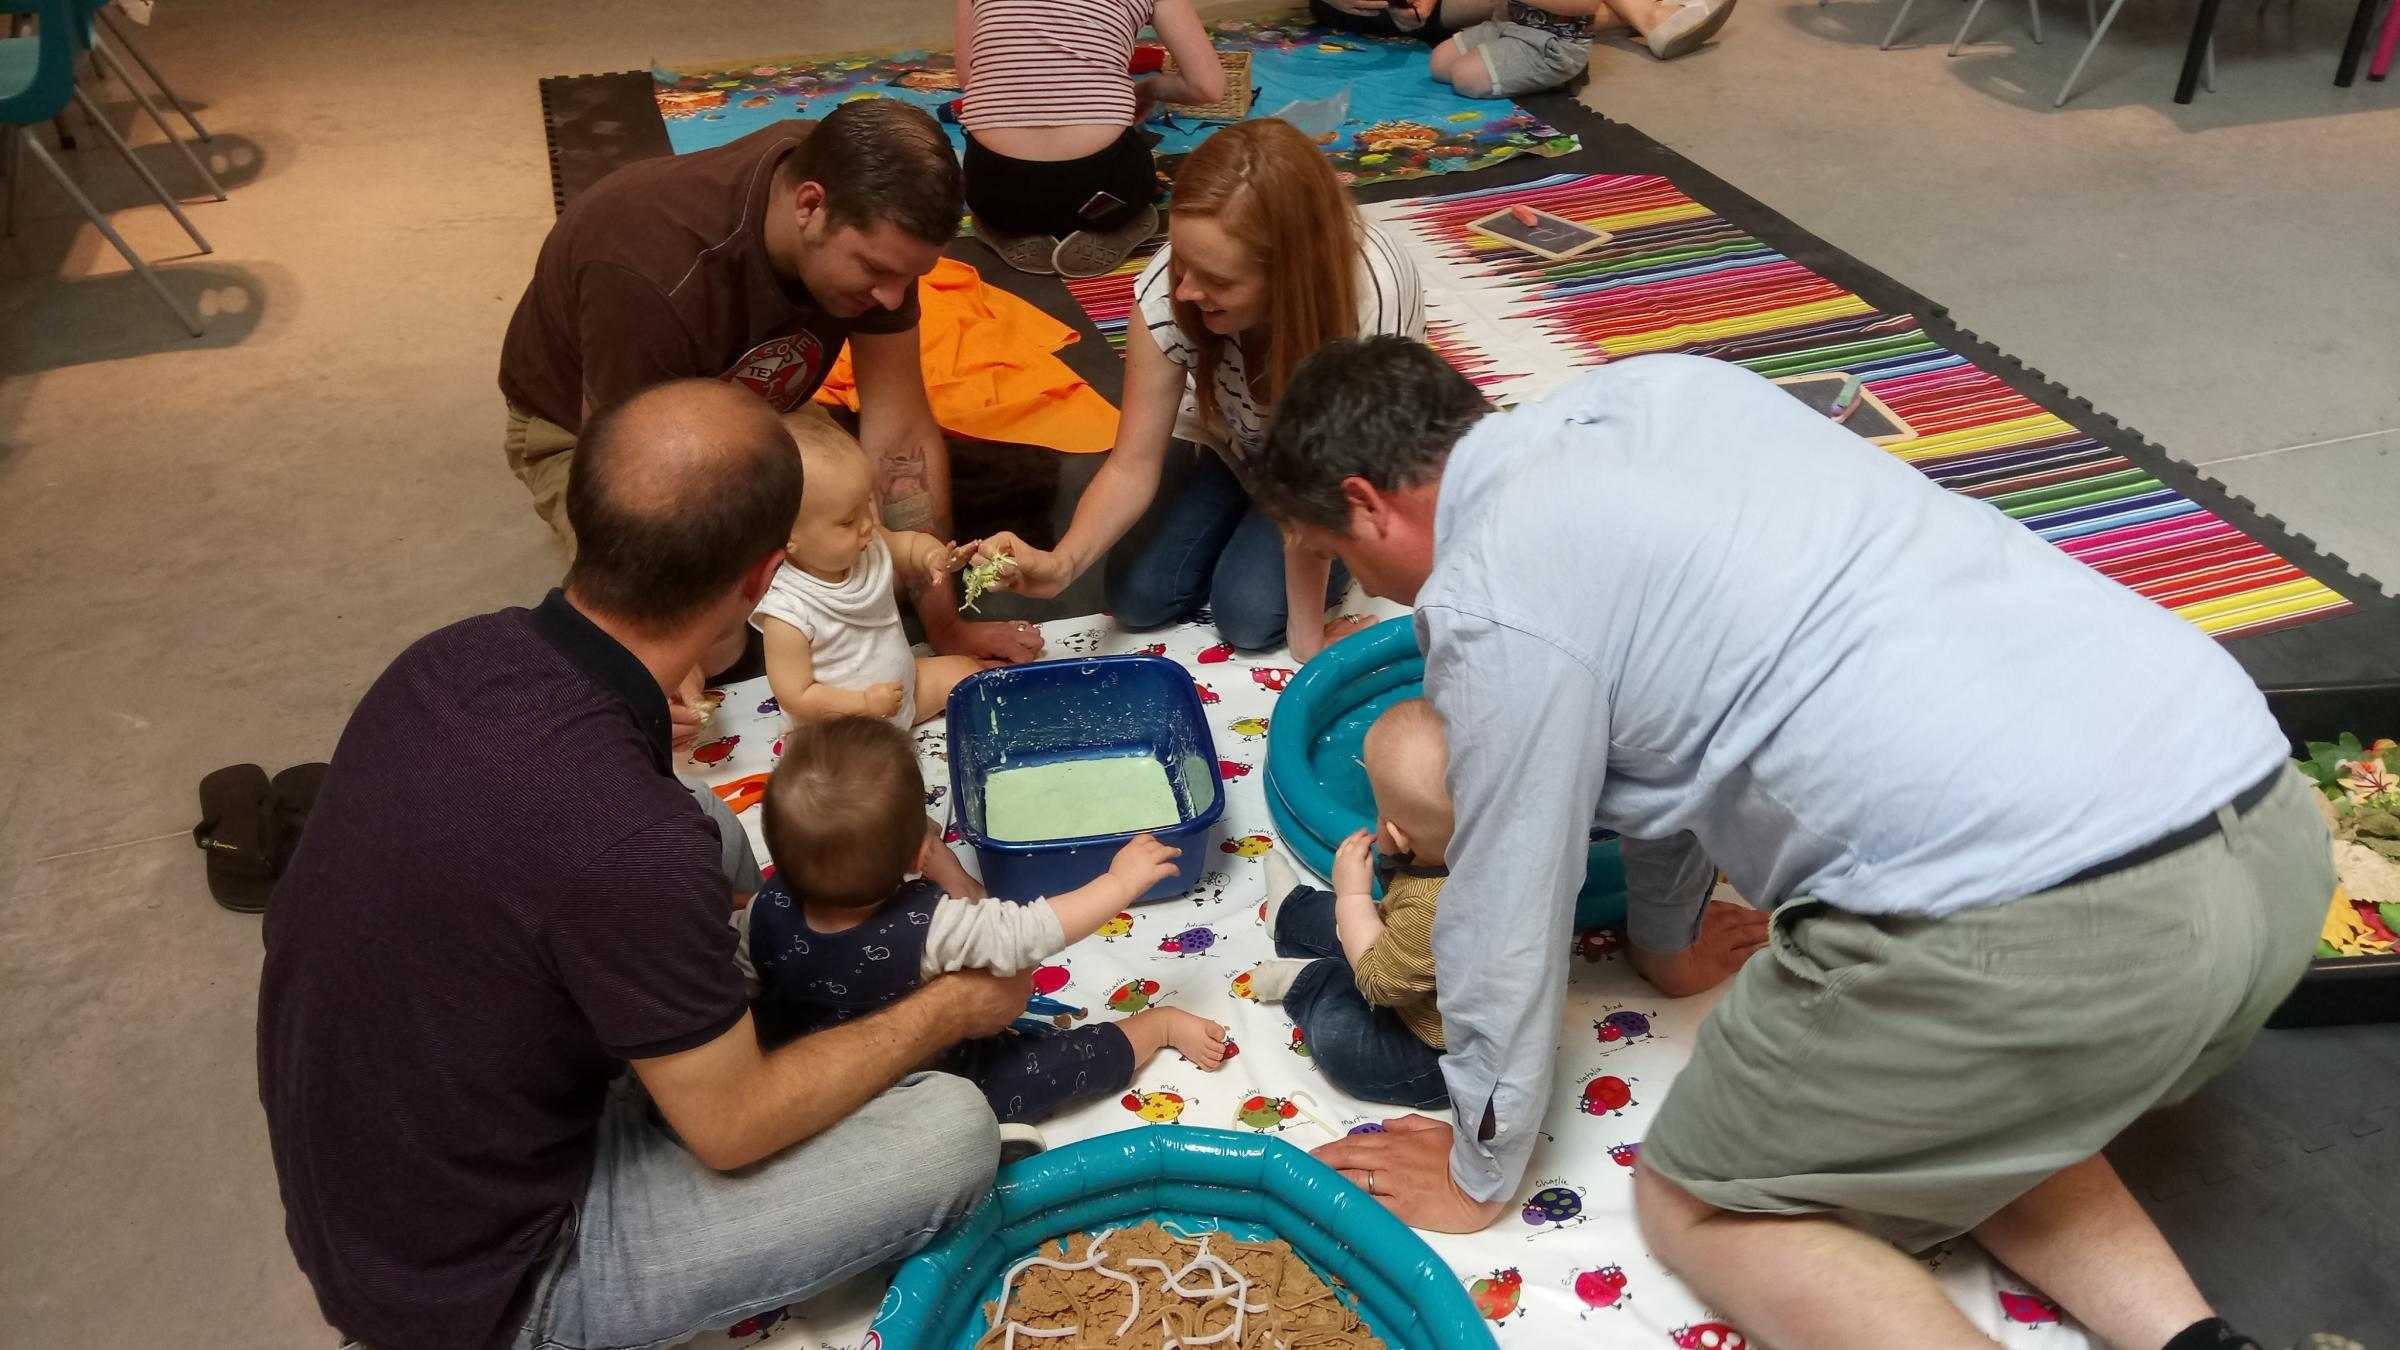 Family Crafty Sense - Summer at the Seaside